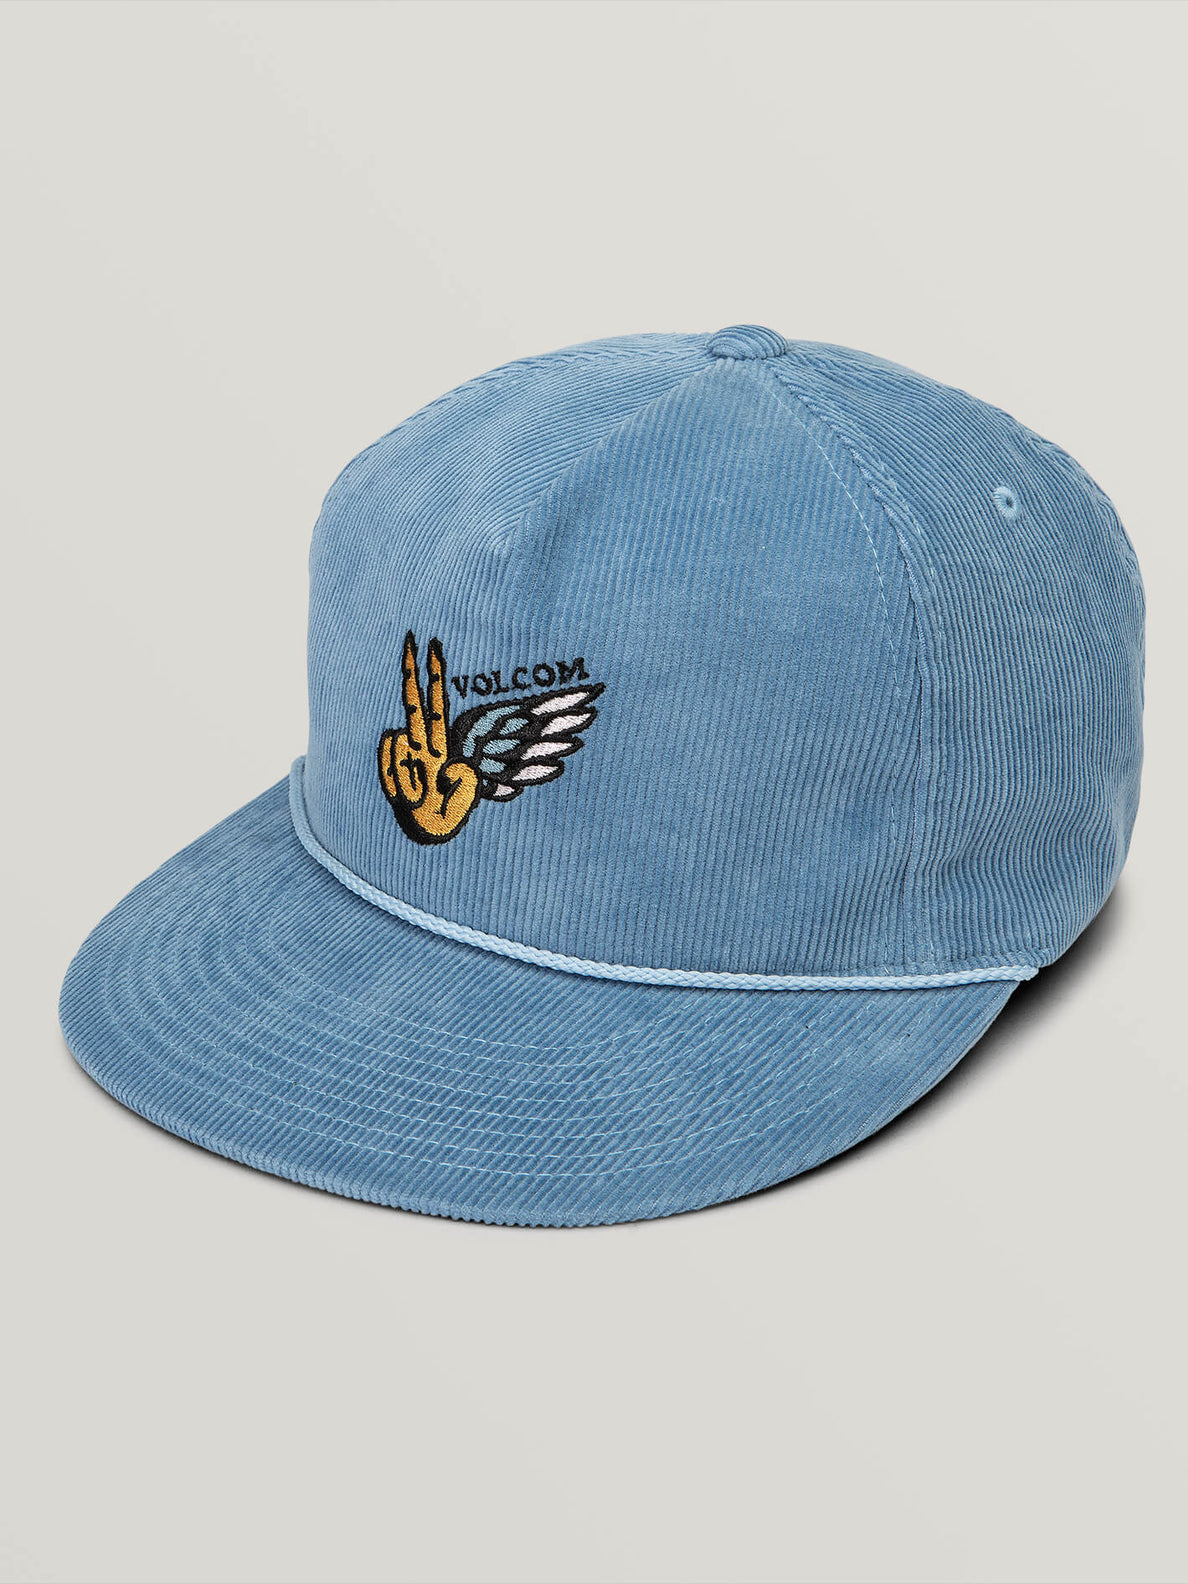 Peace Wing Hat In Vintage Blue, Front View